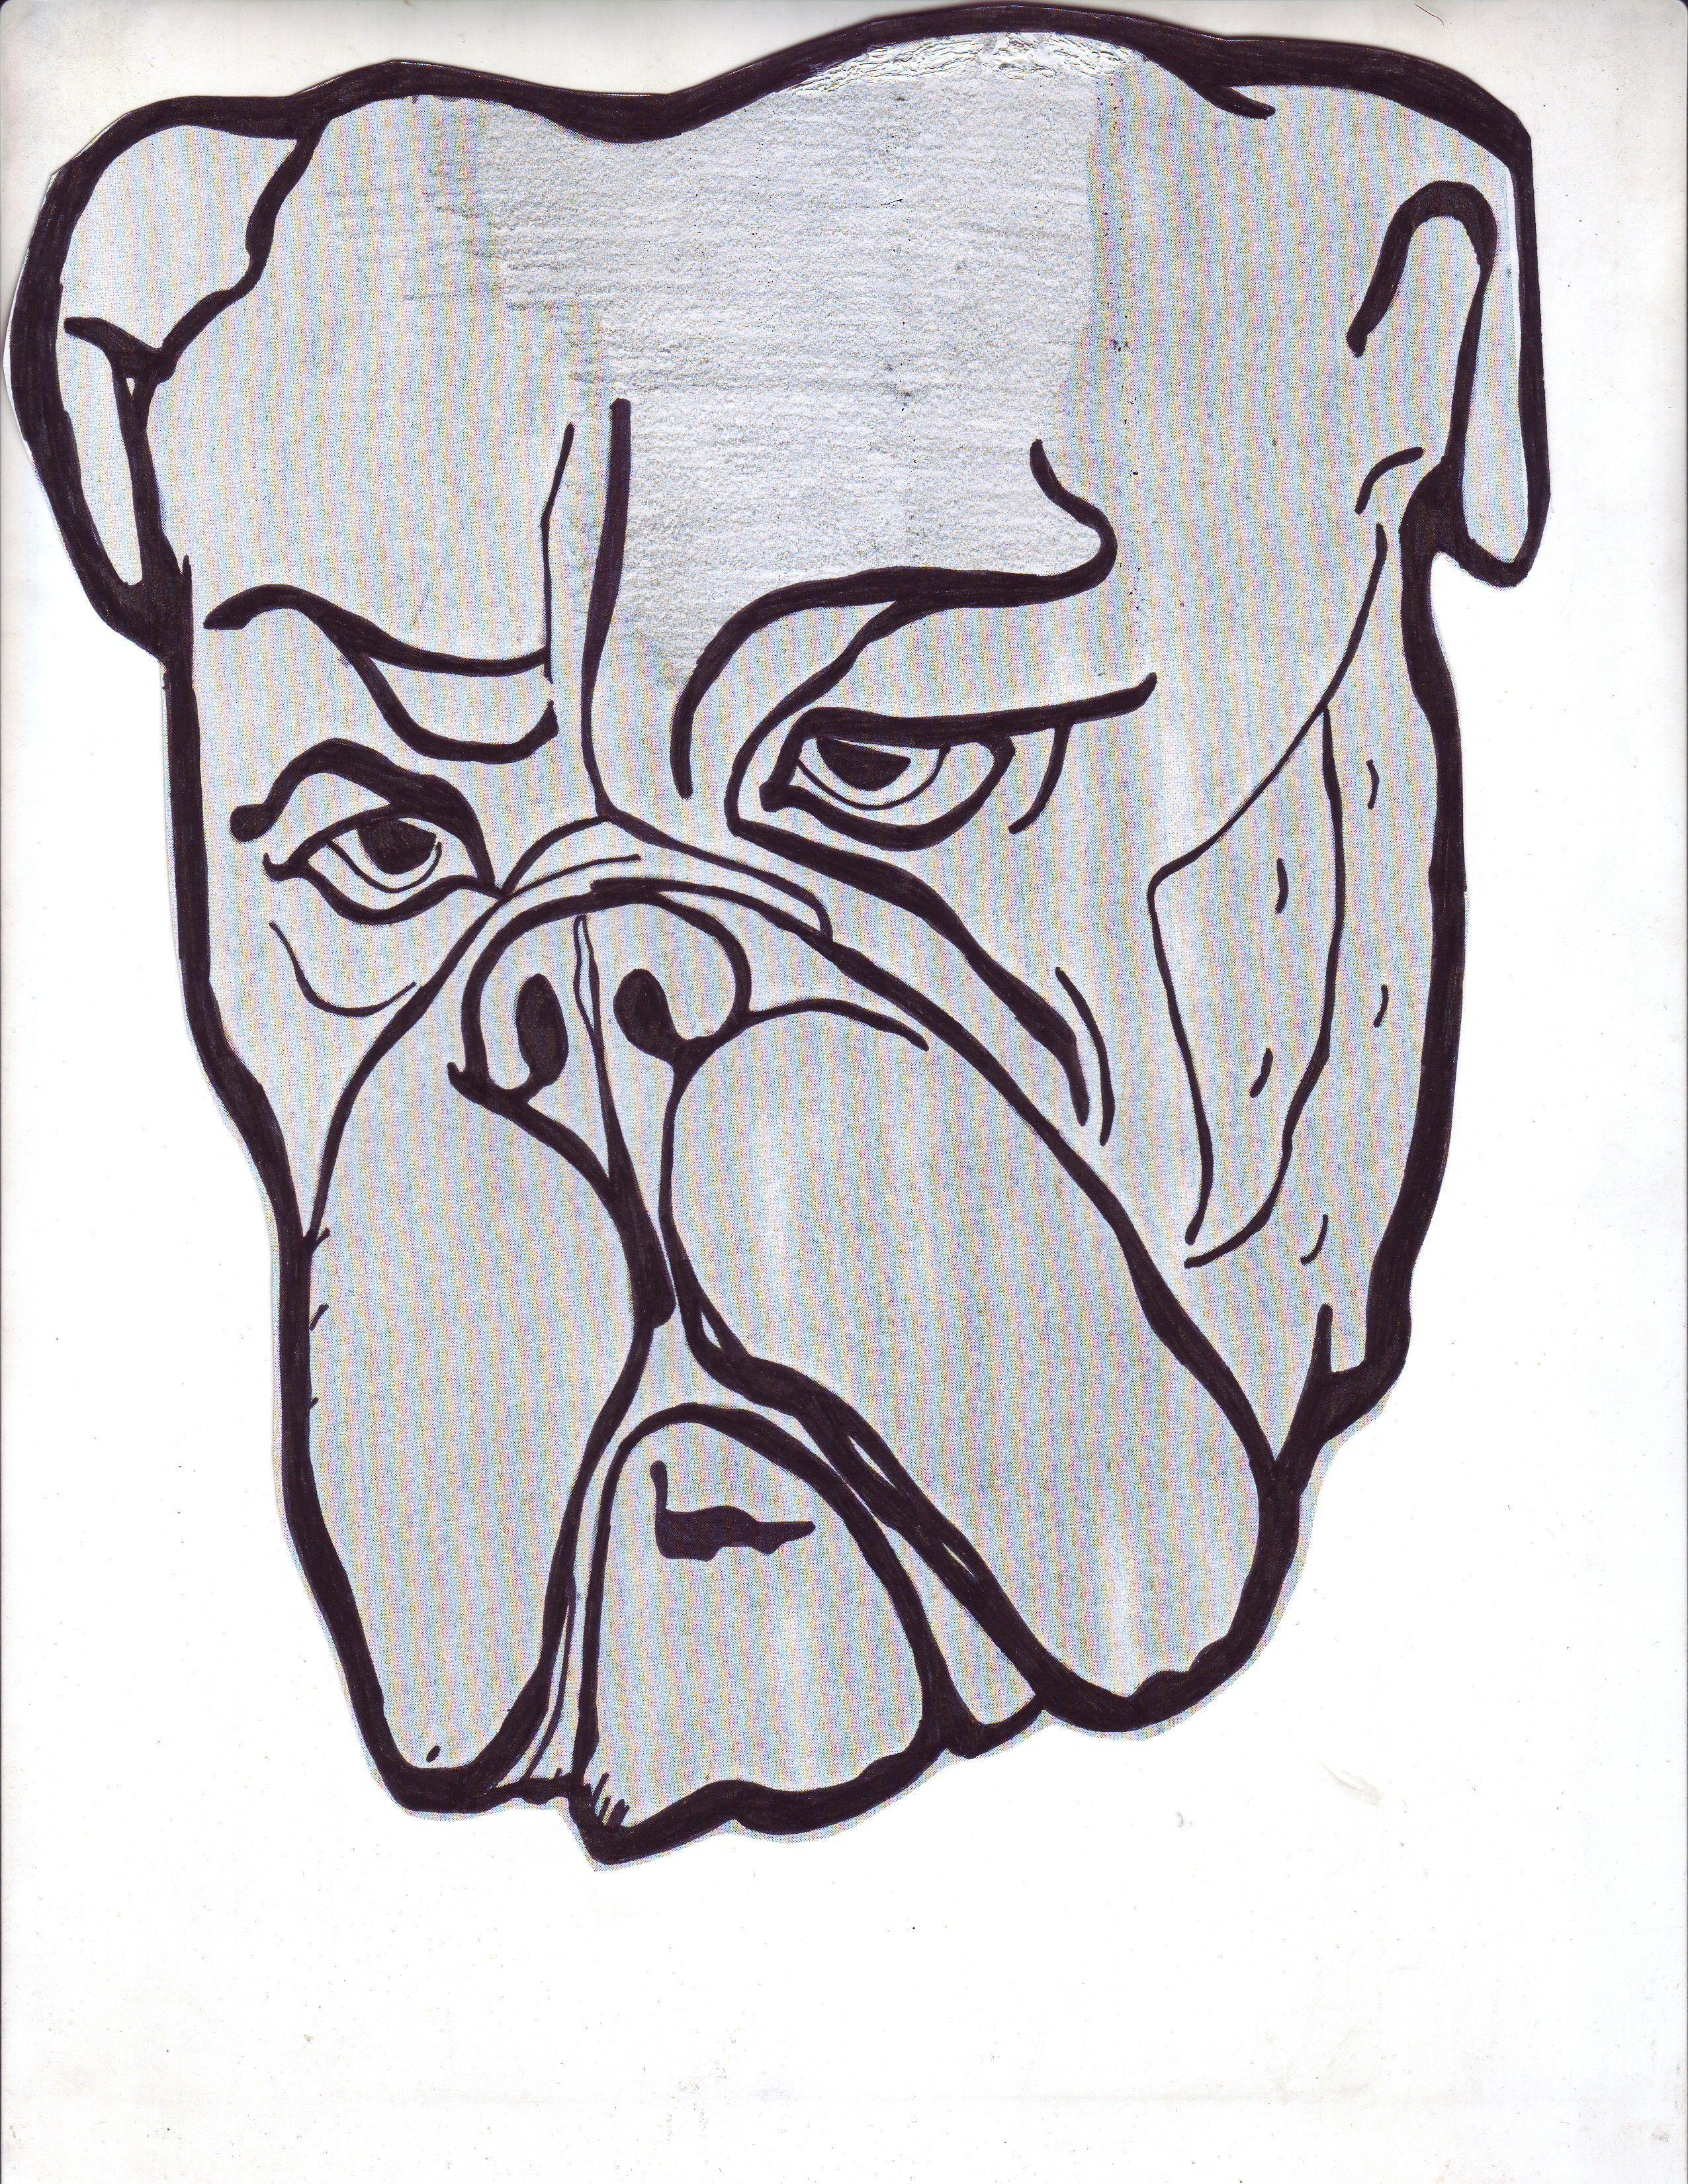 The first drawing of a bulldog: Pepper Eichler